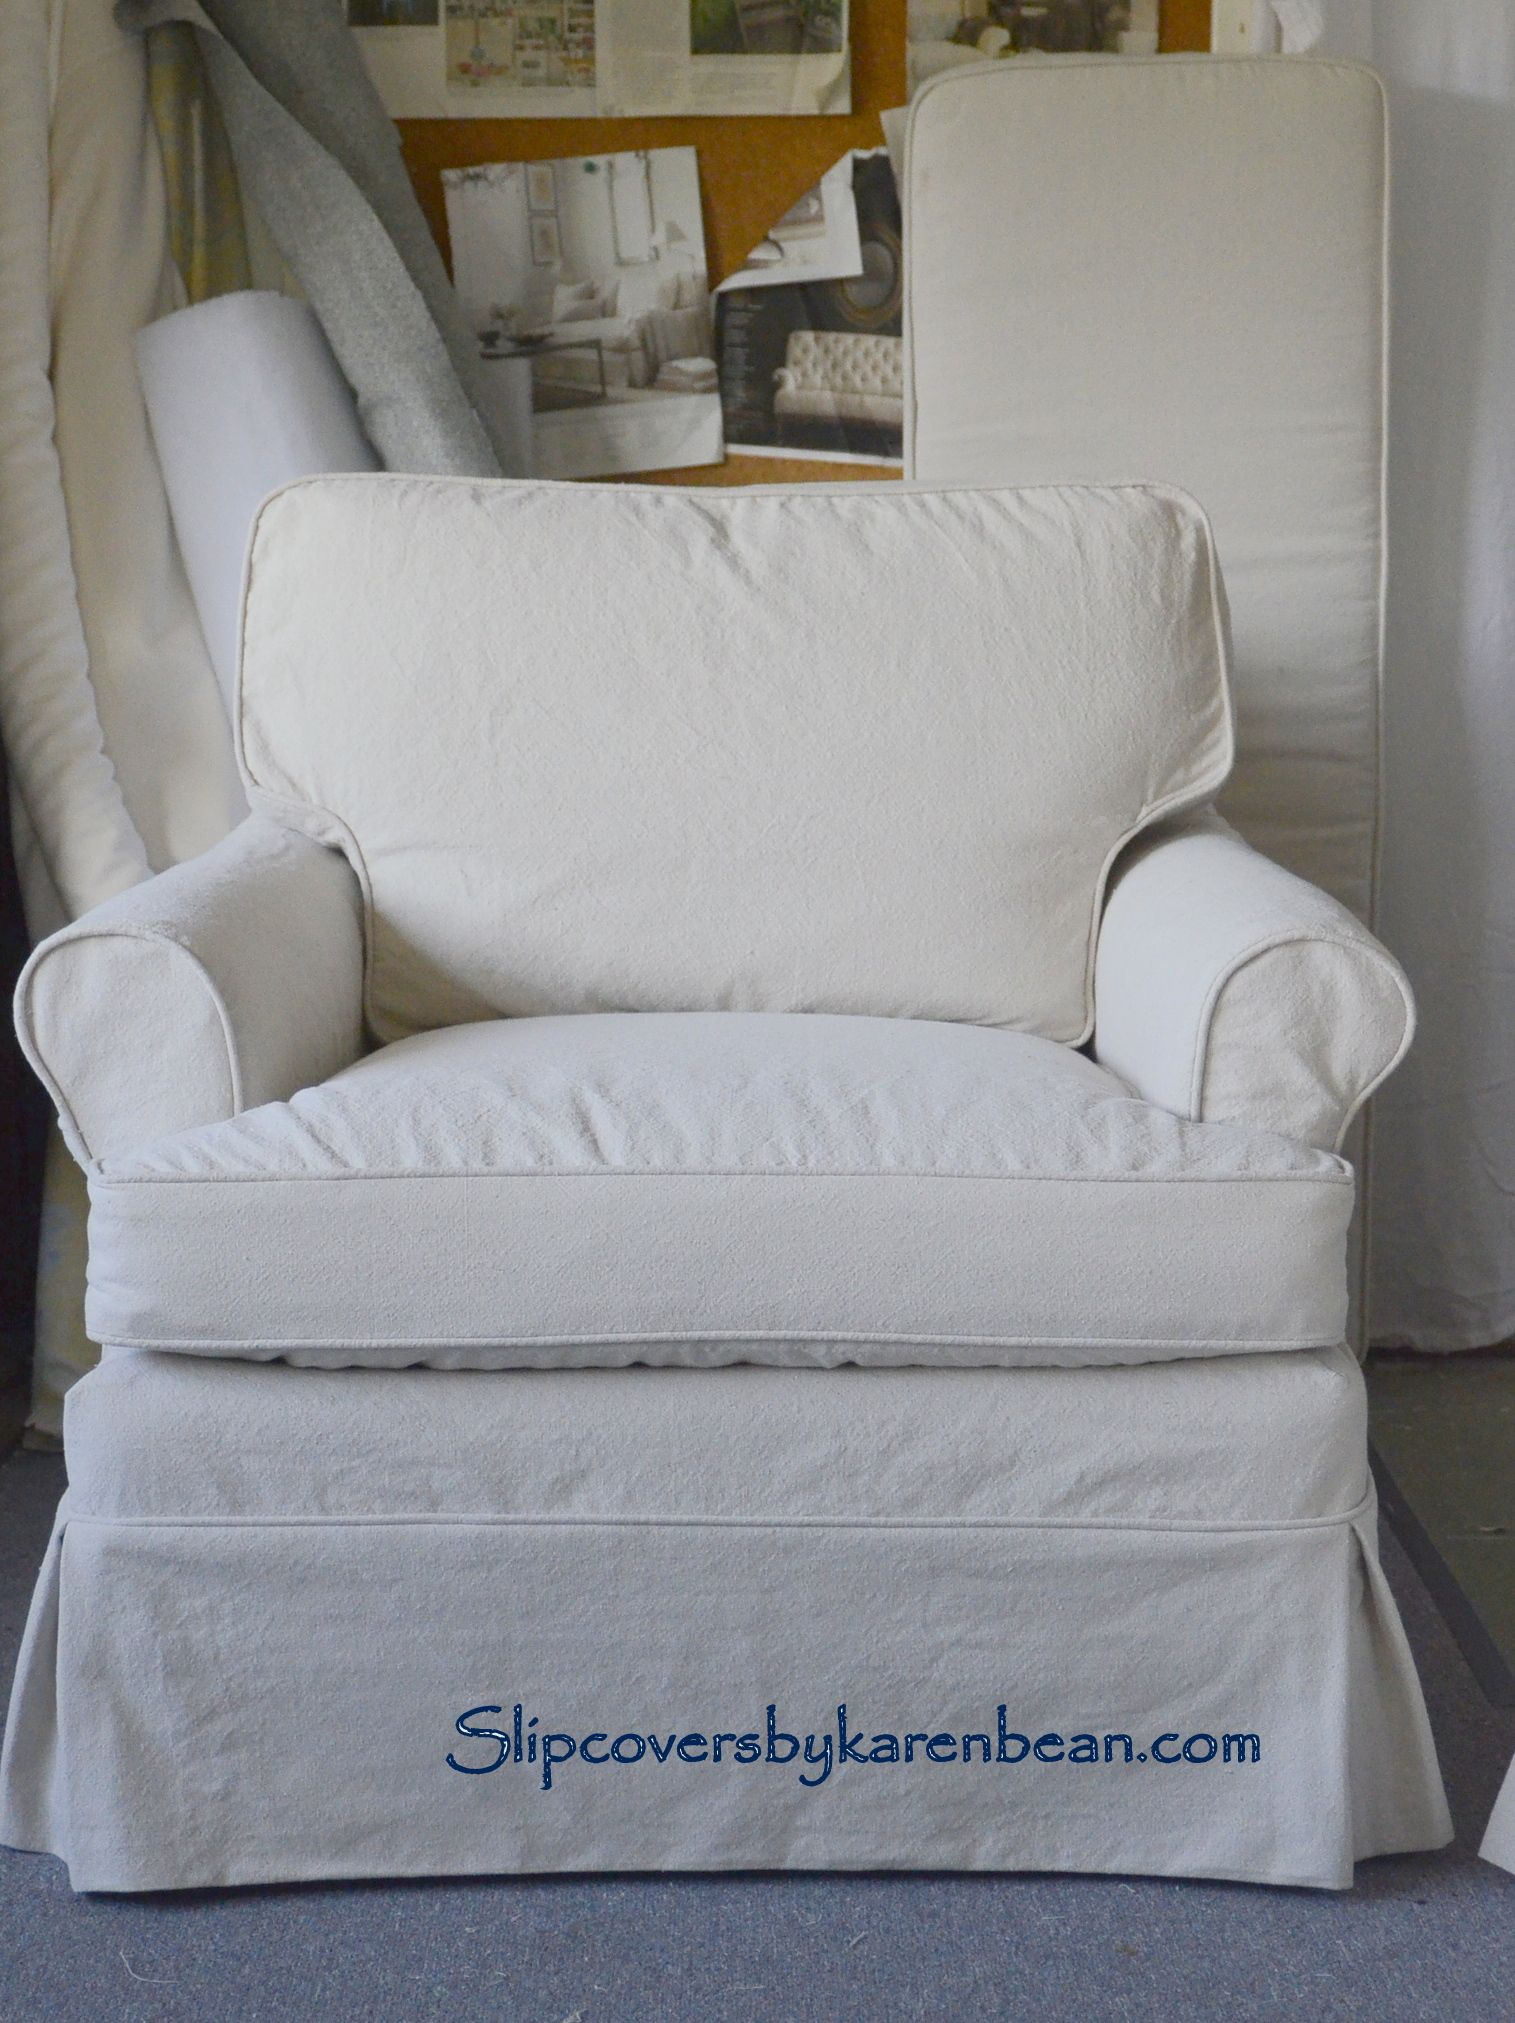 Slipcover with dropcloth Upholstery Pinterest